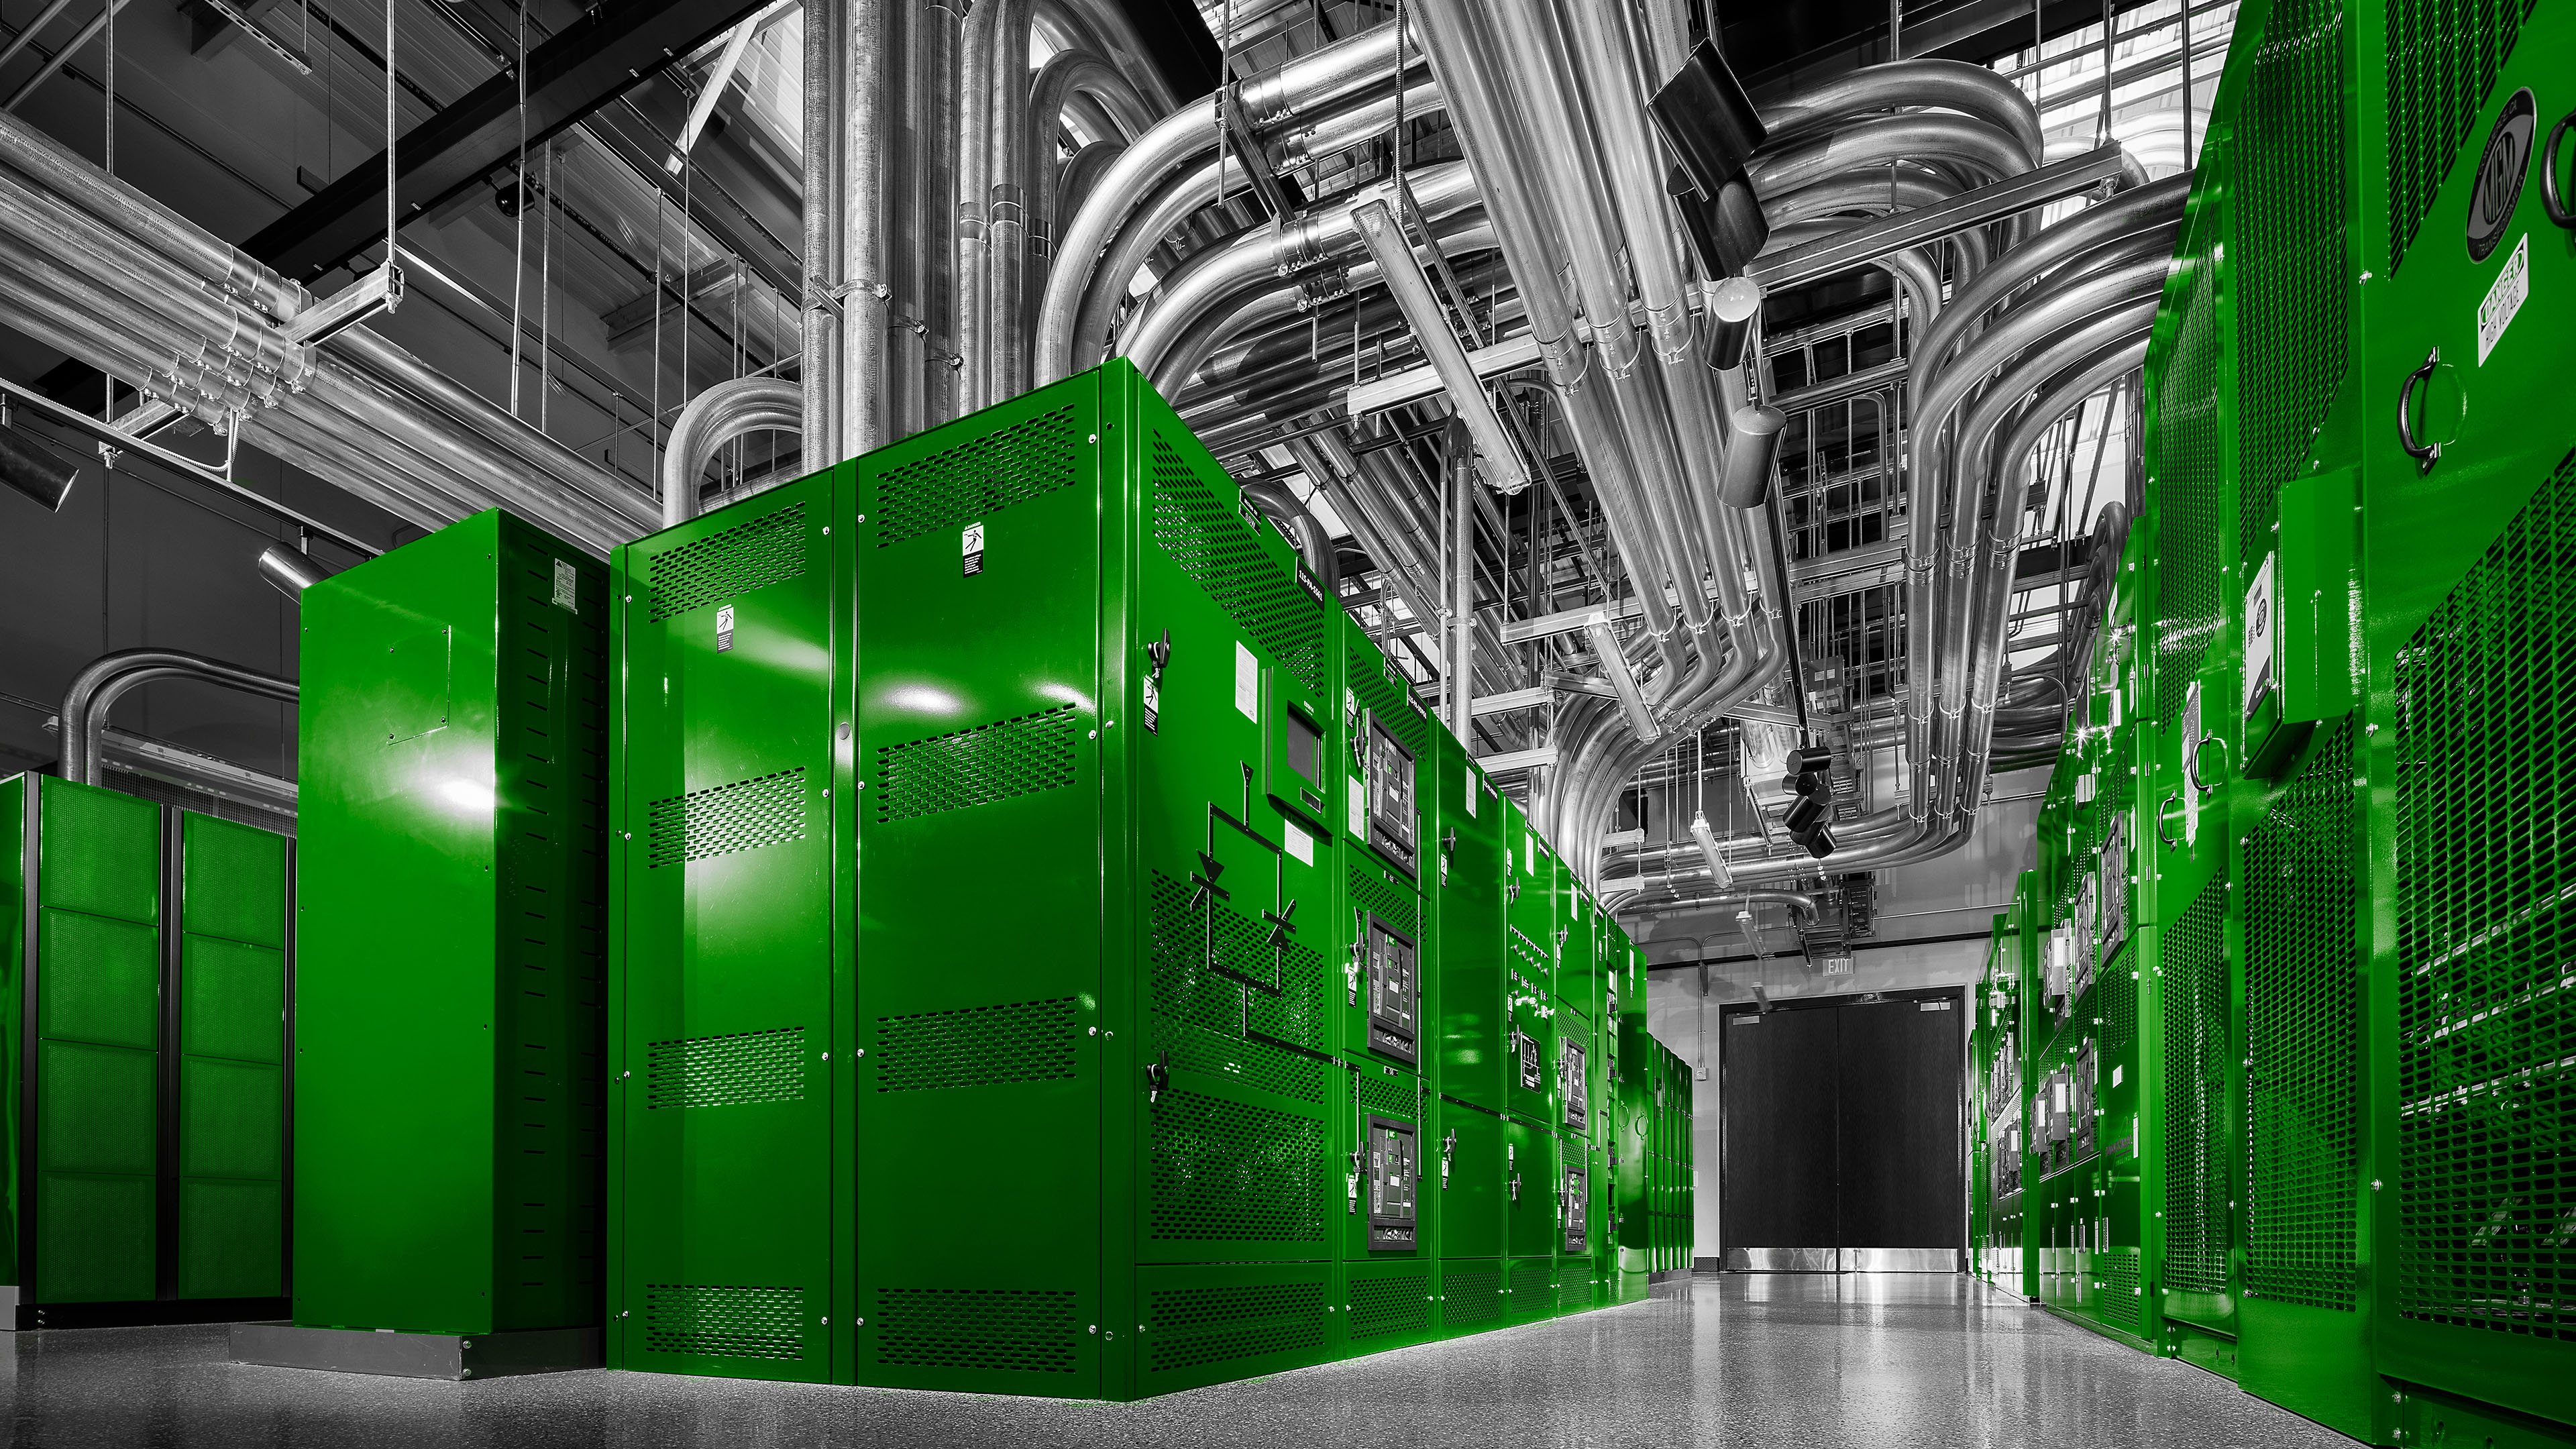 Hulu Moves Data Centers to 100 Percent Renewable Energy Facility